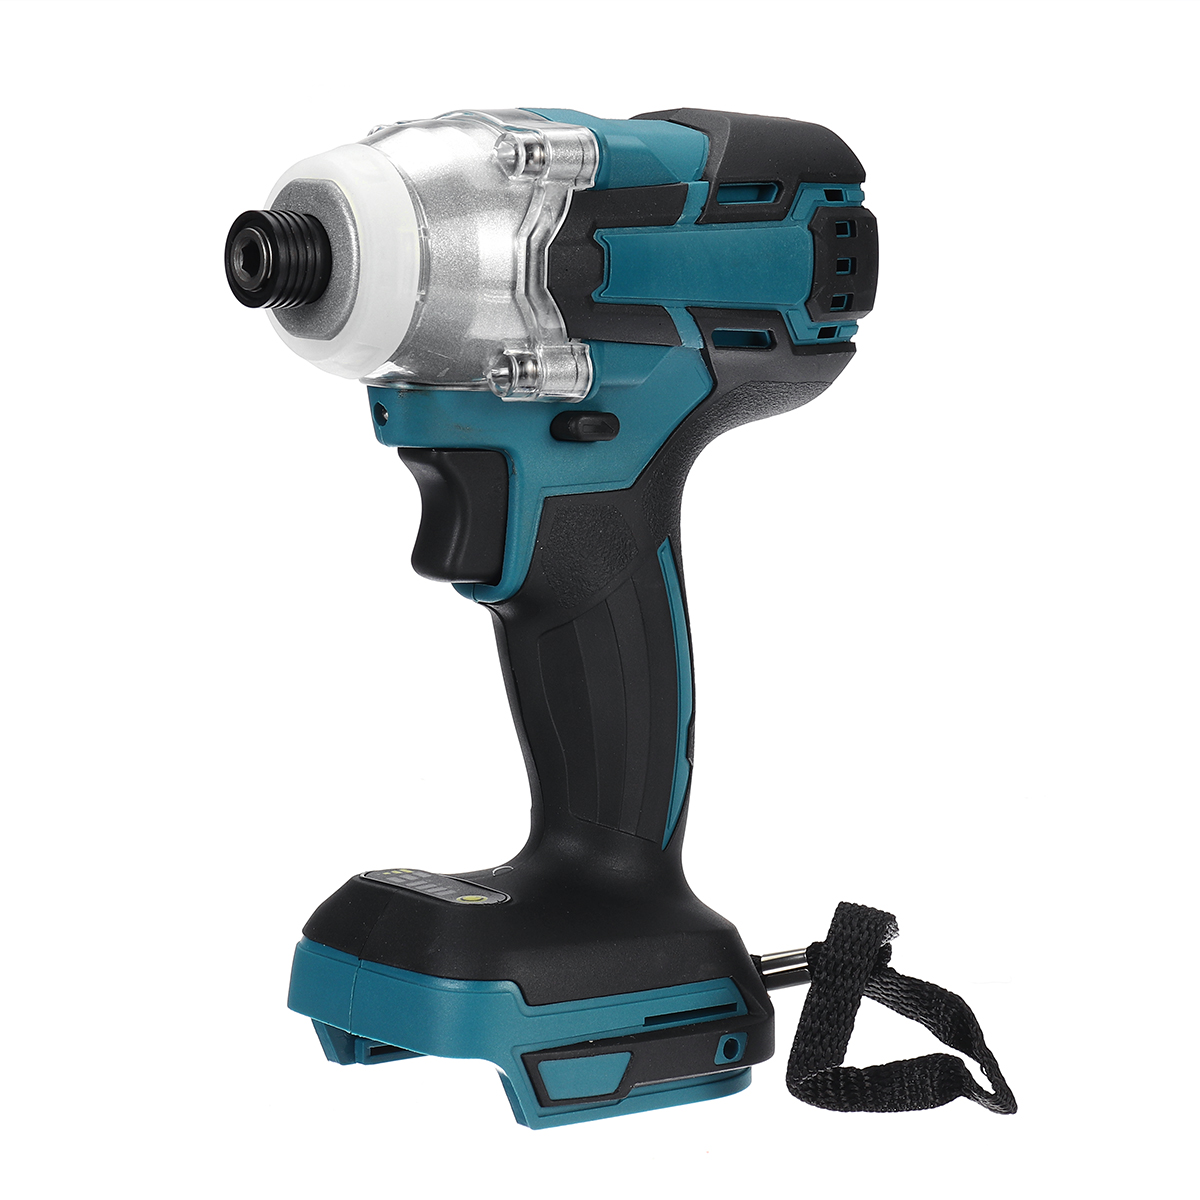 18V 520 N.m Cordless Electric Screwdriver Speed Brushless Impact Wrench Rechargable Drill Driver+ LED Light For Makita Battery